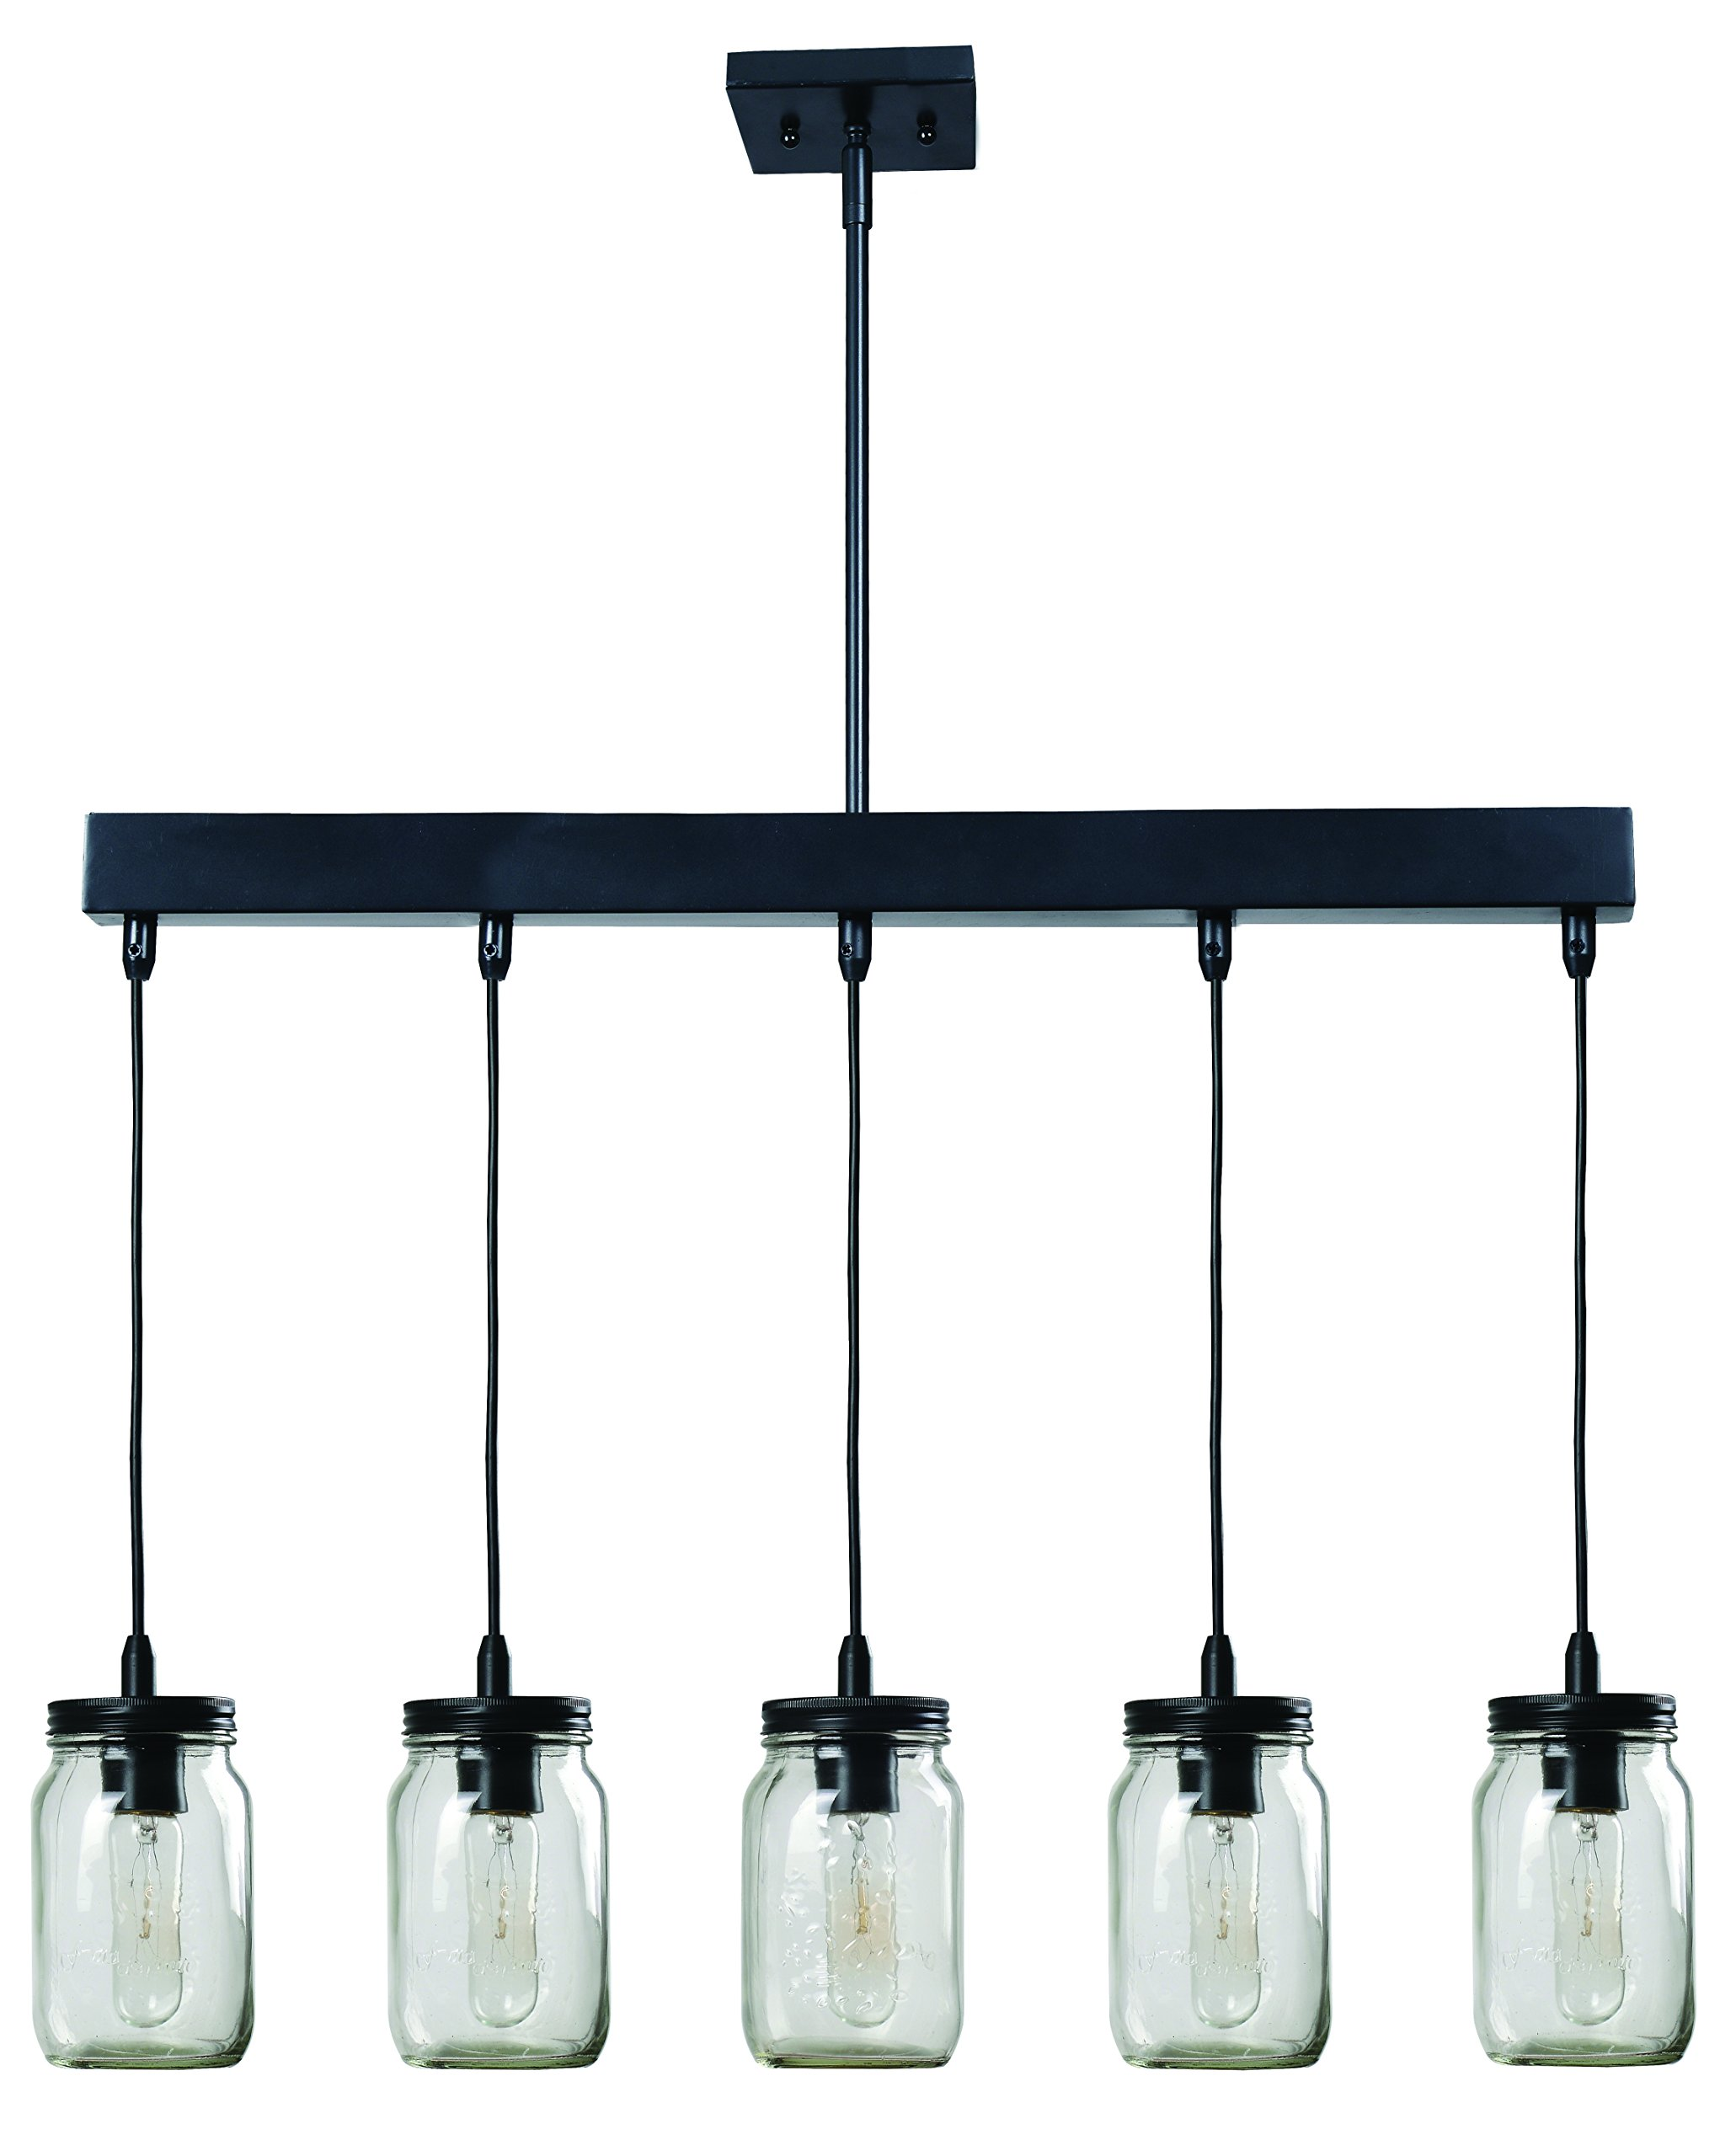 Kenroy Home 93695ORB  Appalachian 5-Light Island Light, Blackened Oil Rubbed Bronze